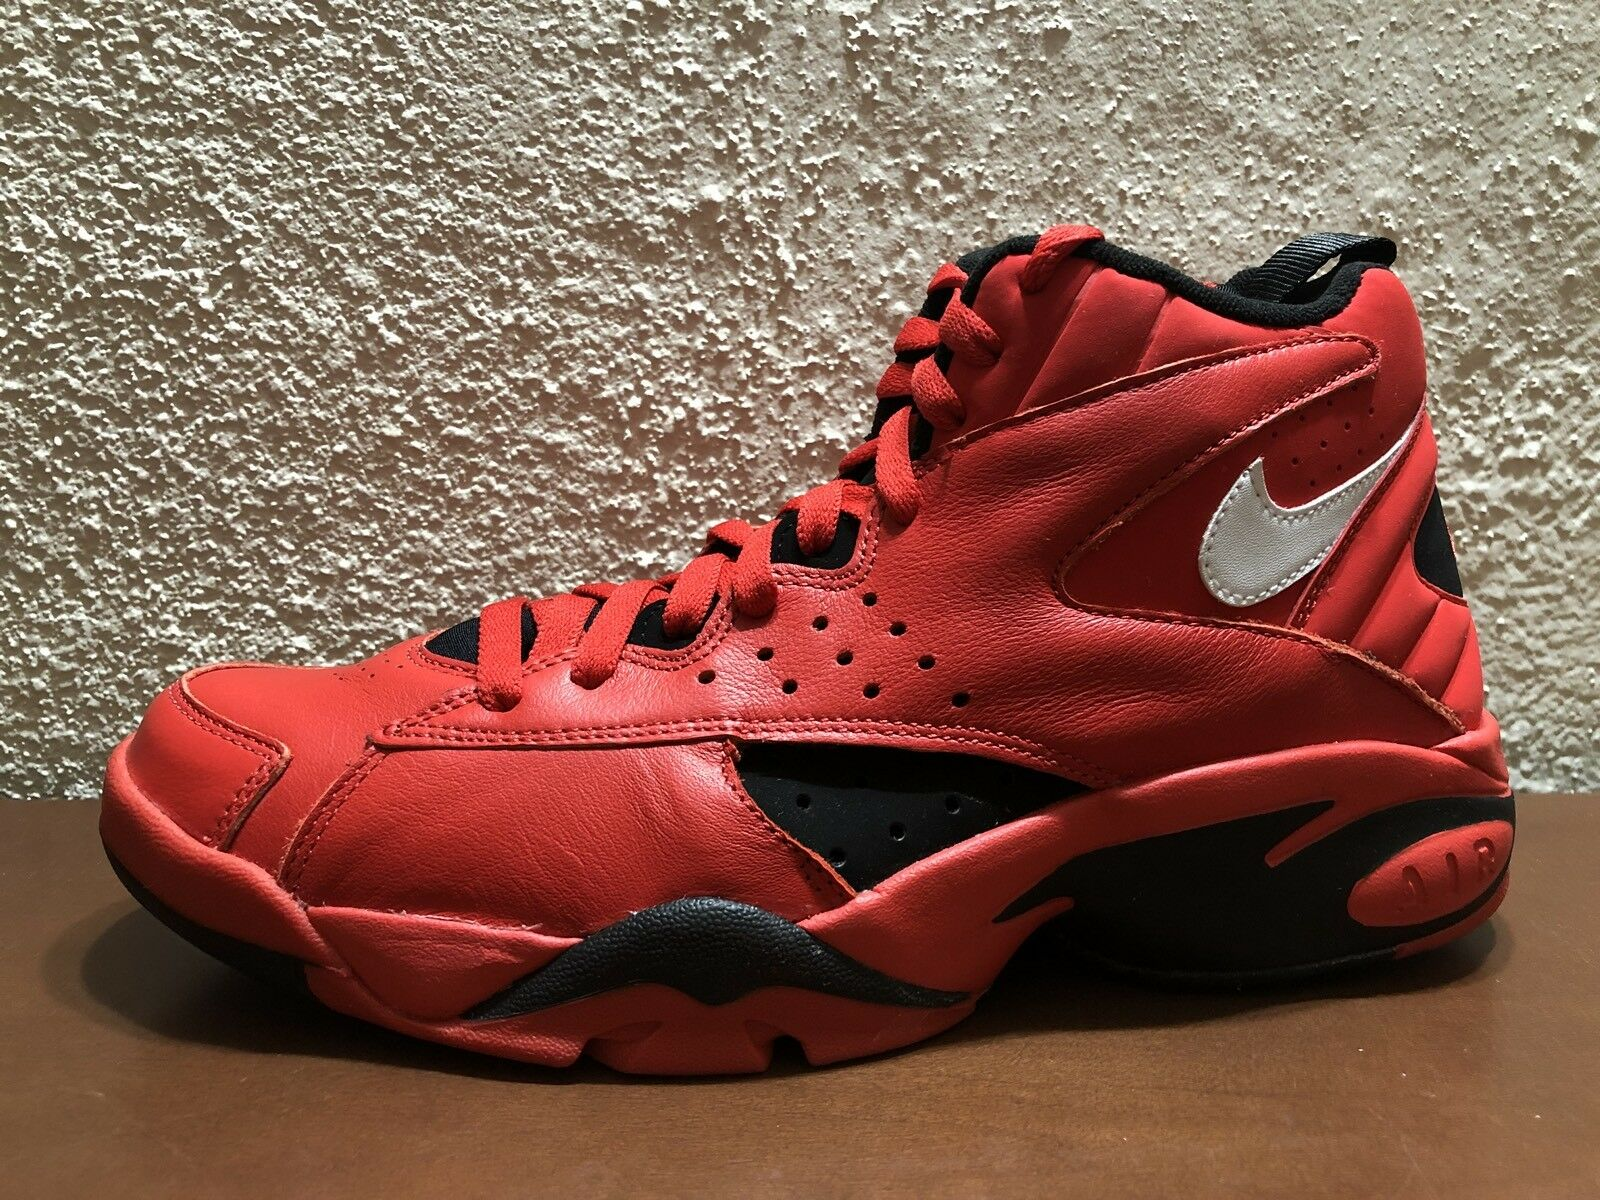 NIKE AIR MAESTRO 2 II QS TRIFECTA THINK 16 University rouge AQ9281 600 Taille 10 NEUF